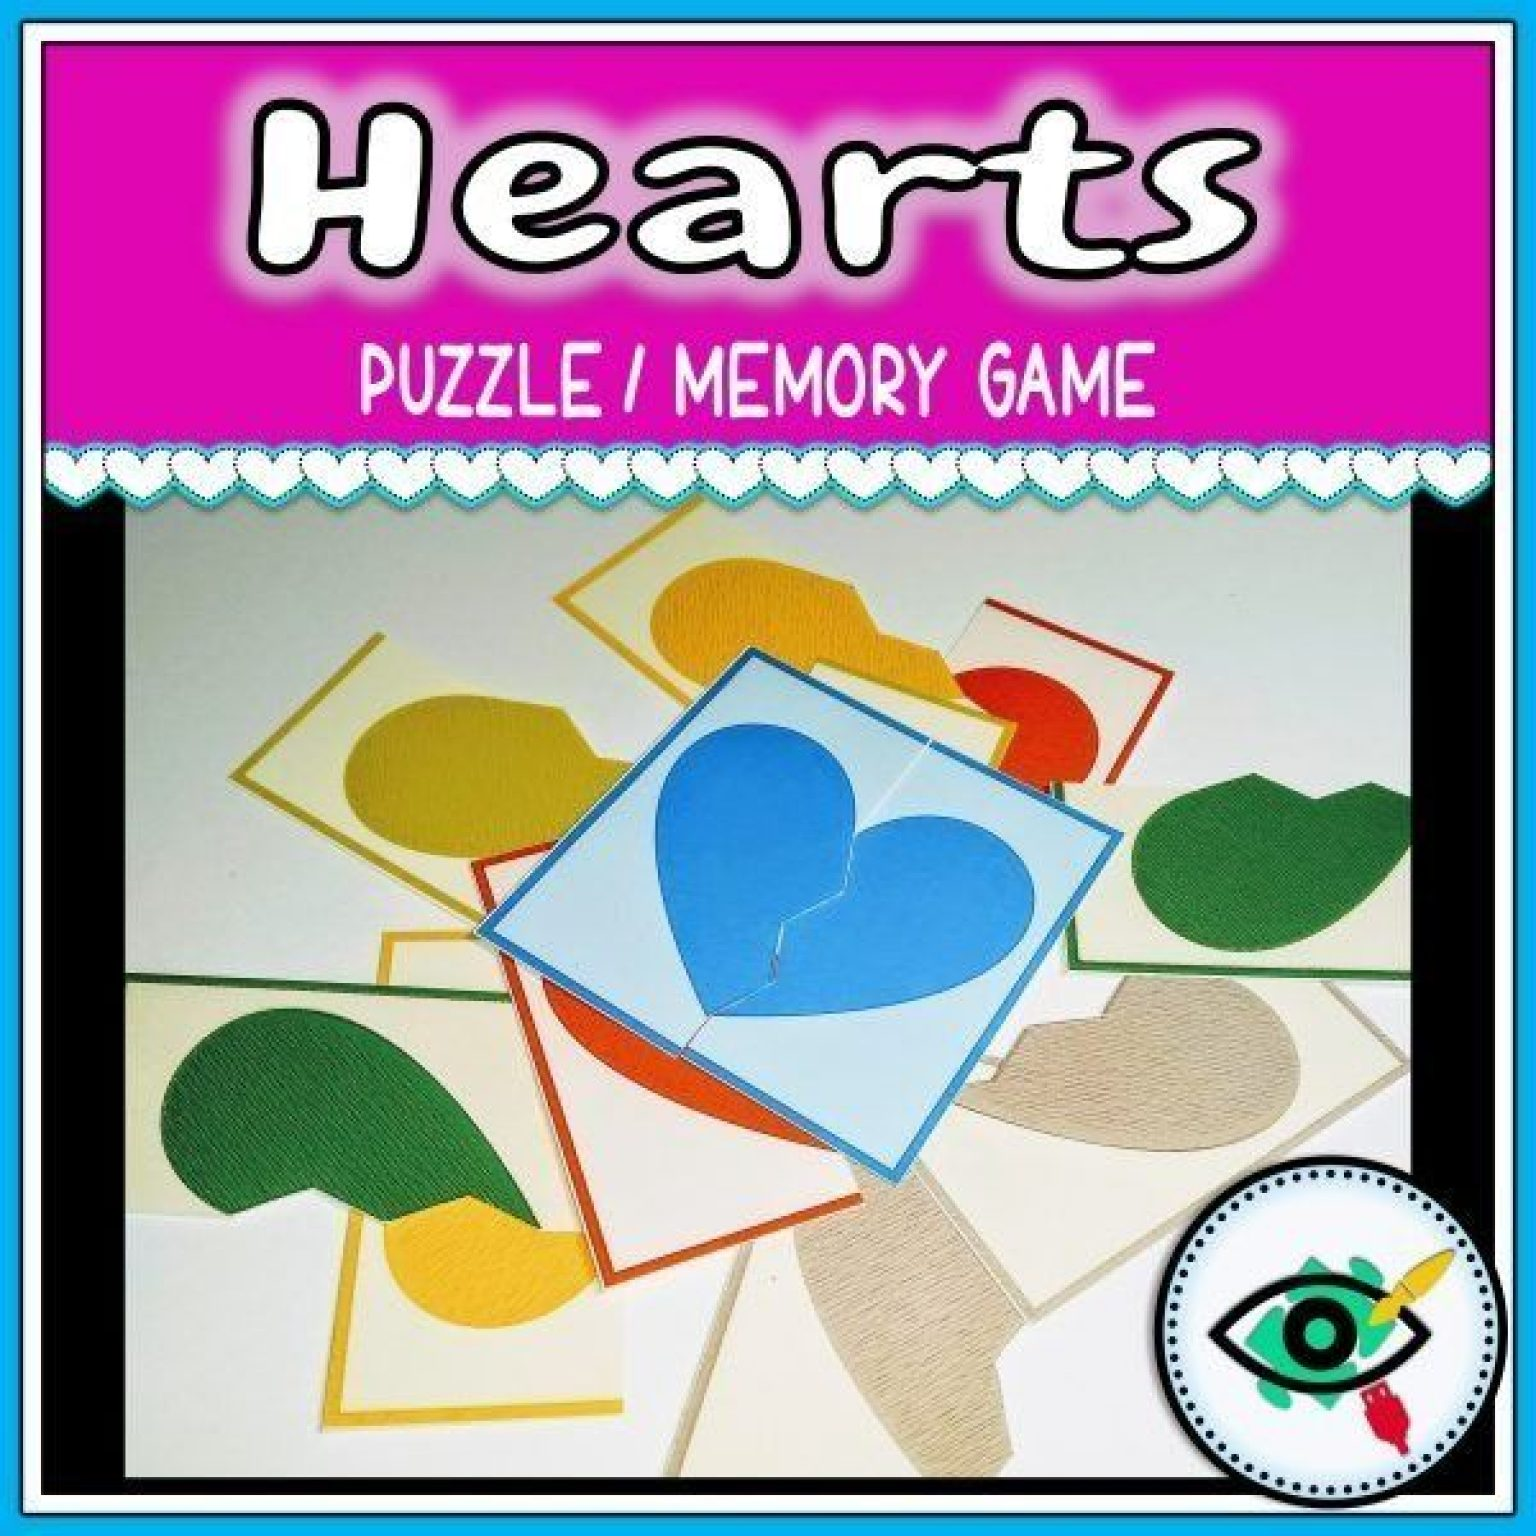 heart-puzzle-memory-game-title3